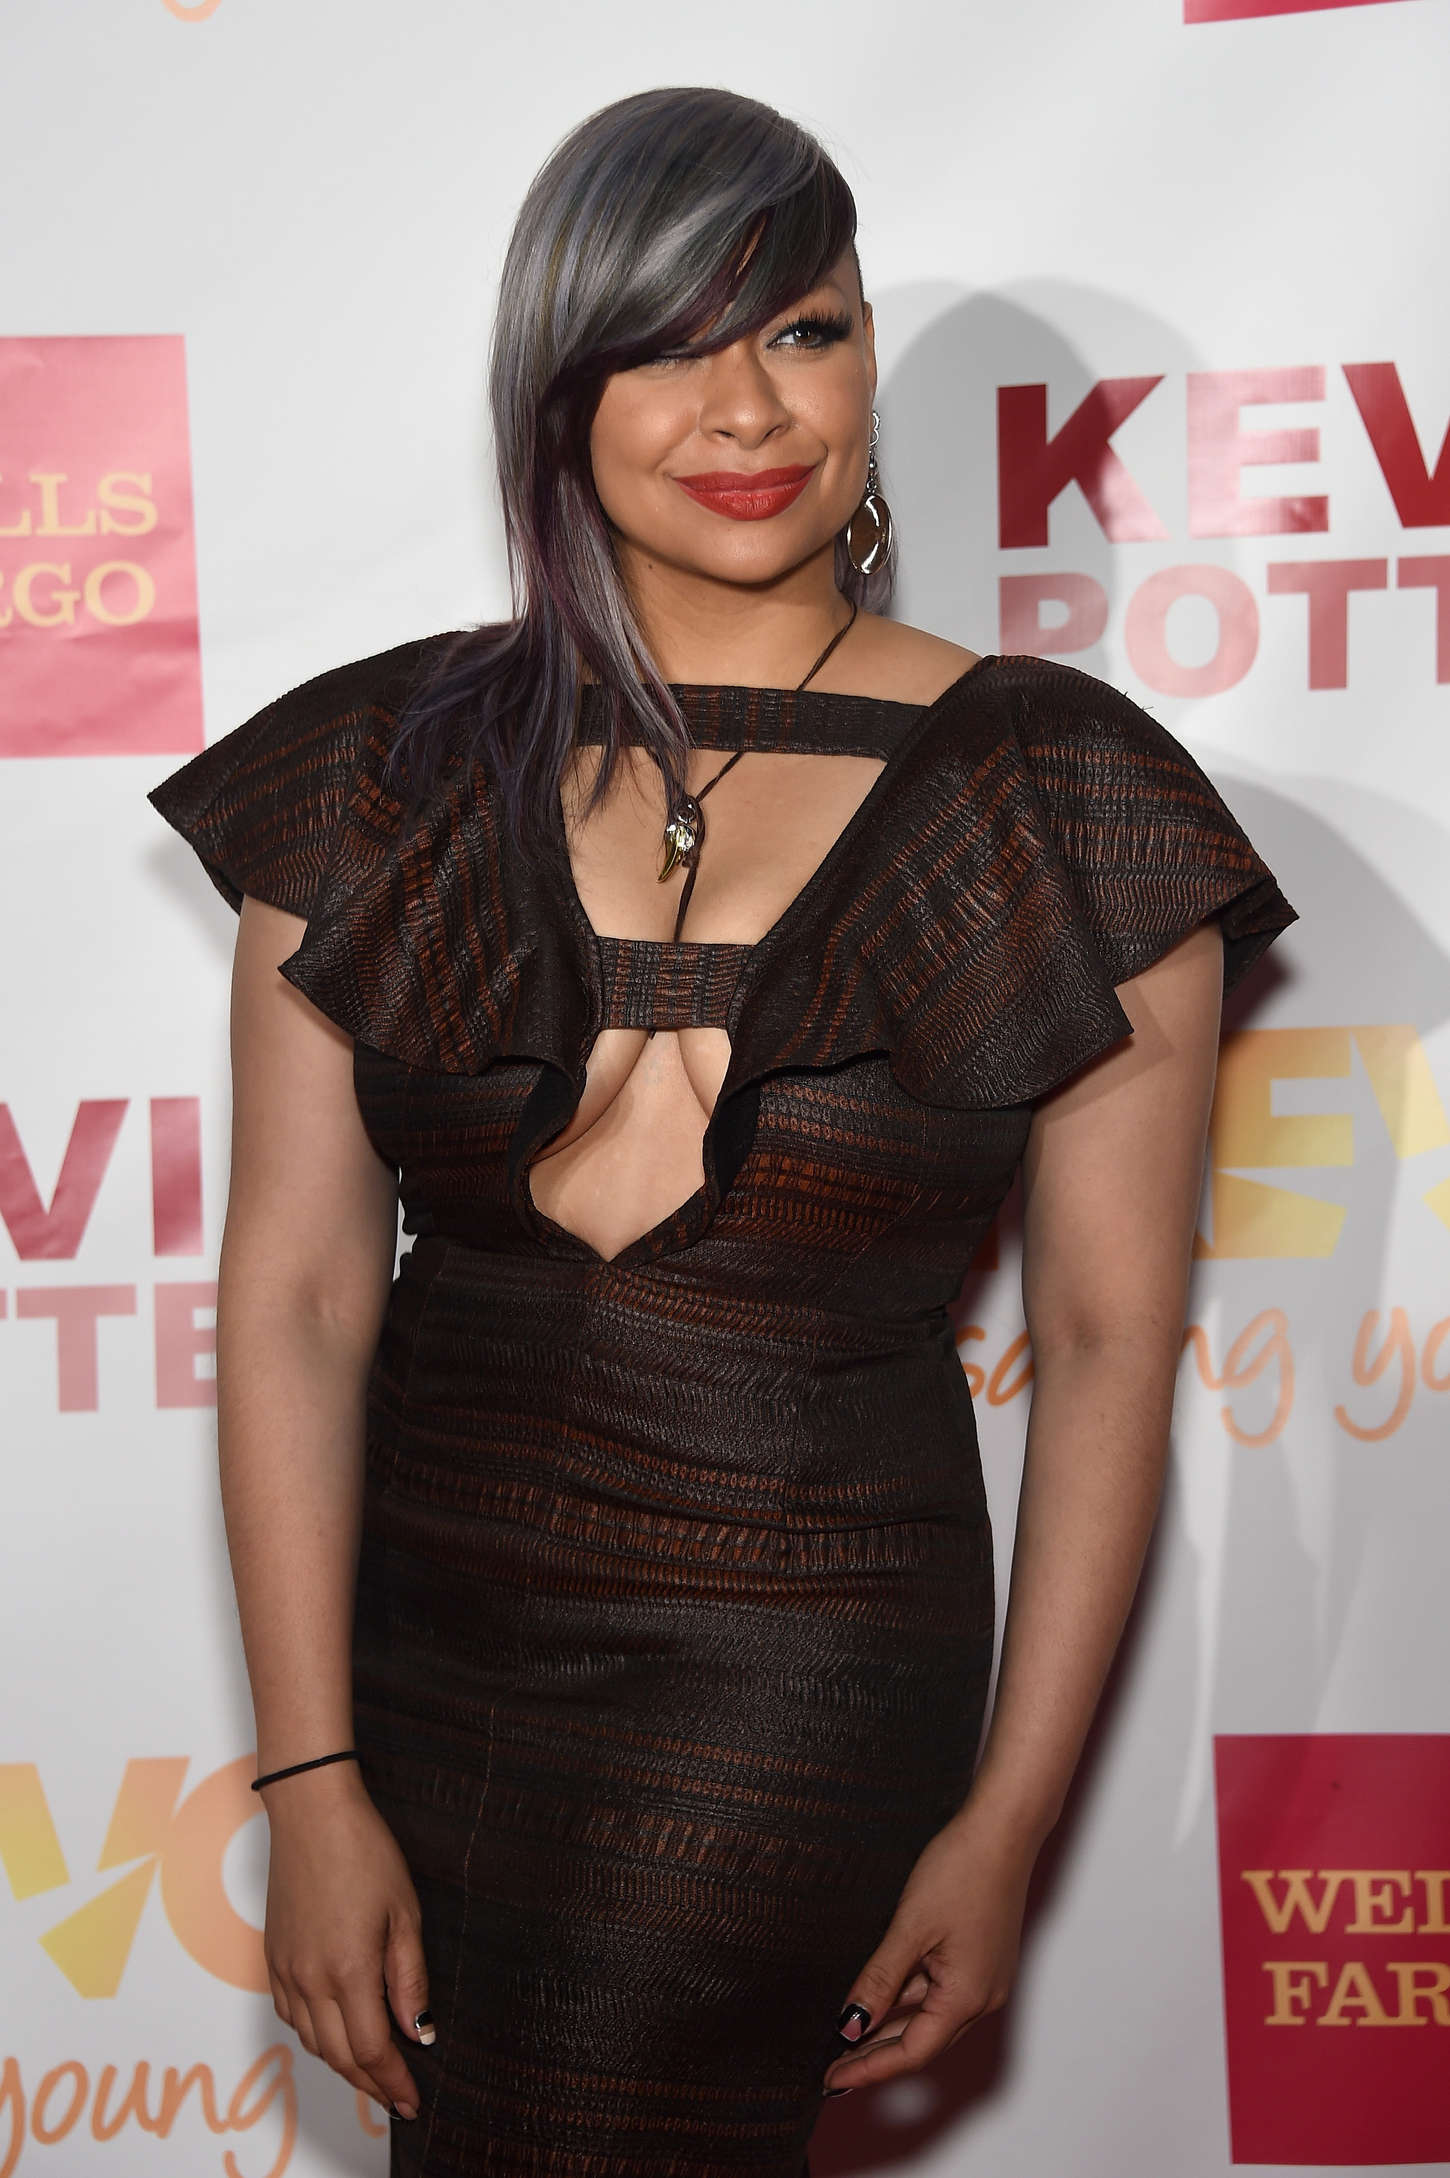 Raven Symone Raven-Symone - TrevorLIVE Event 2015 in New York